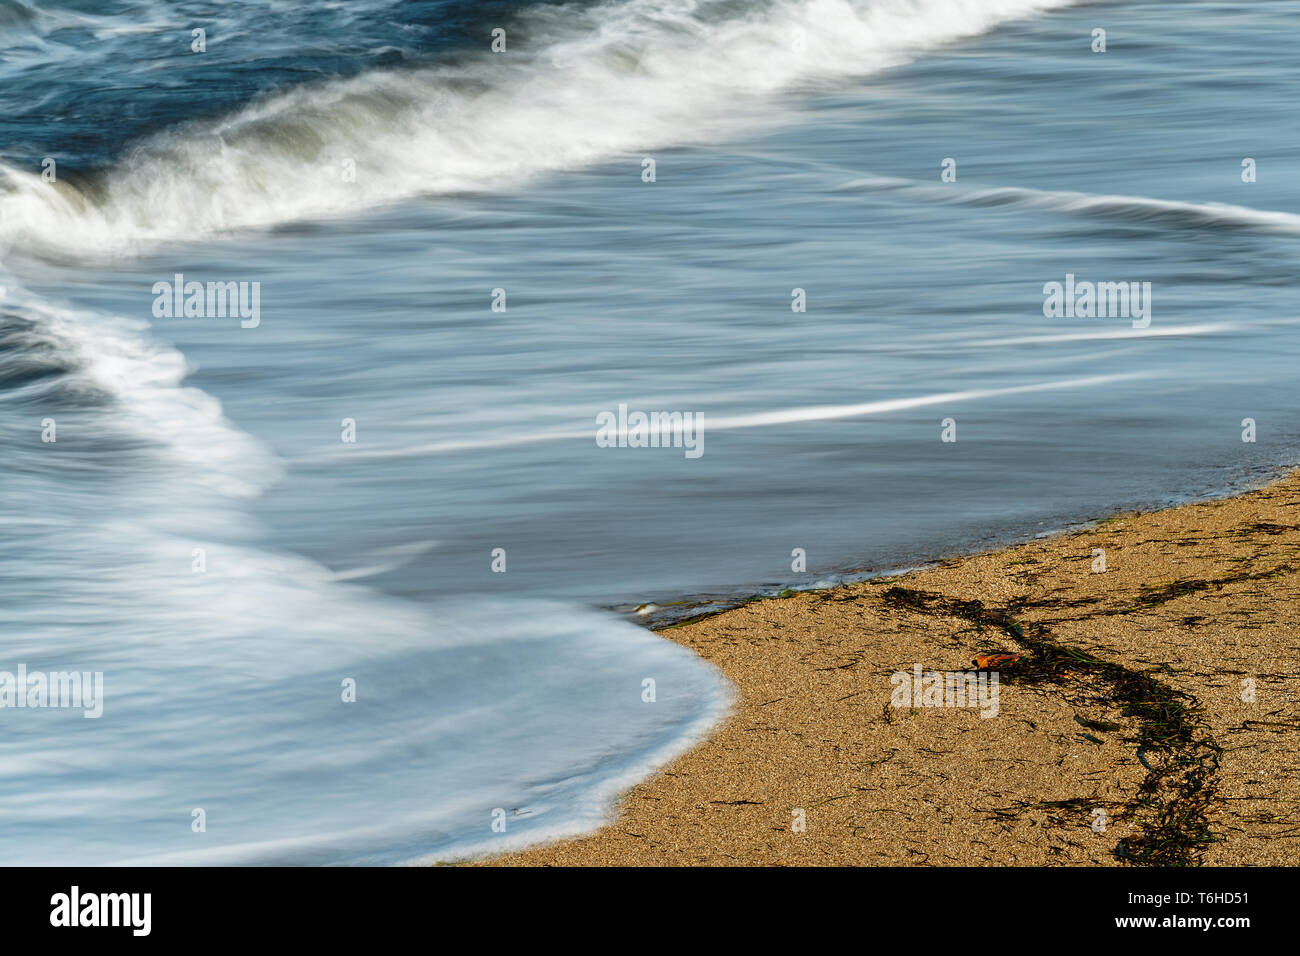 Detail view of a wave, which runs out on a sandy beach, the blue color of the sky is reflected in the shallow water, some washed-up seagrass on the sa - Stock Image